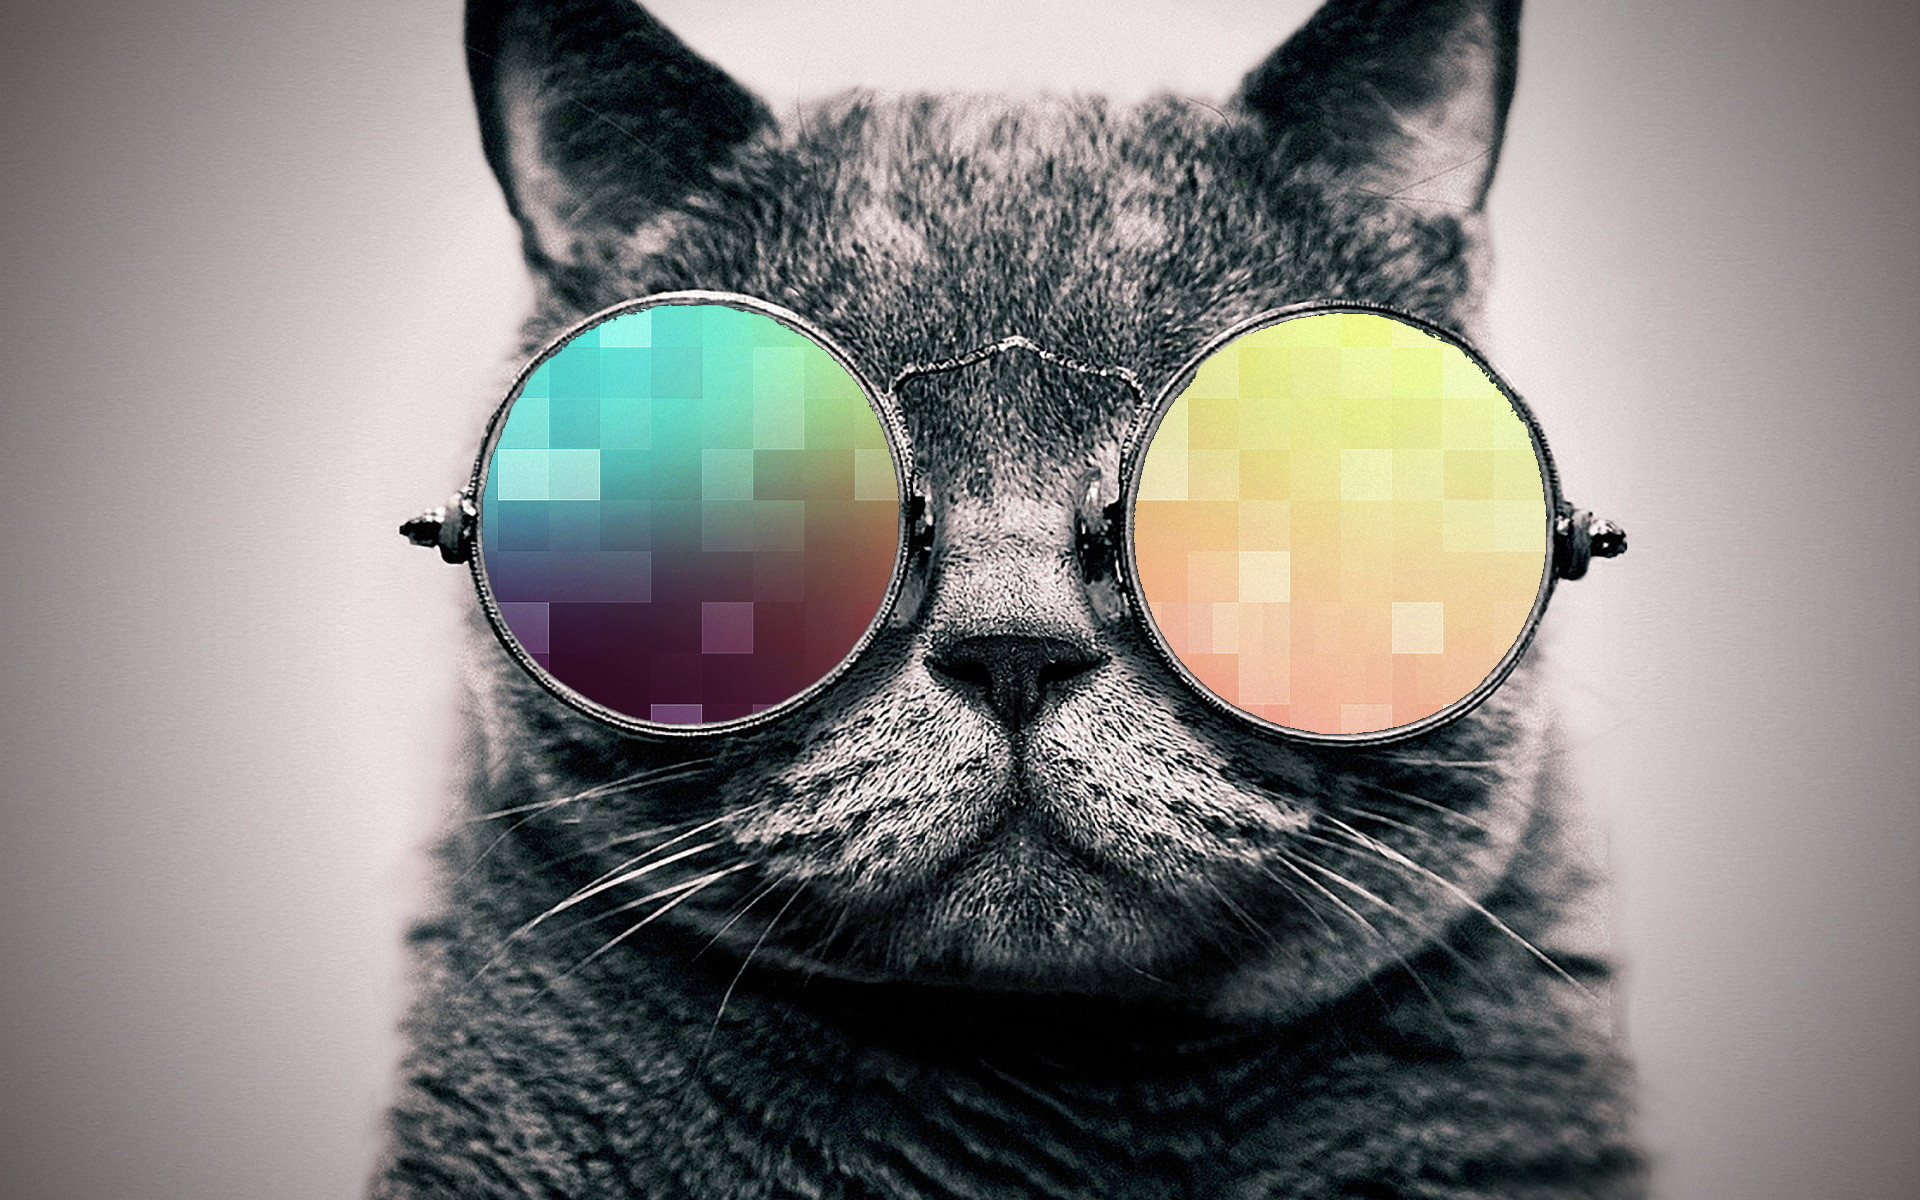 cool cat wallpaper. By ToValhalla Download 1920 X 1200